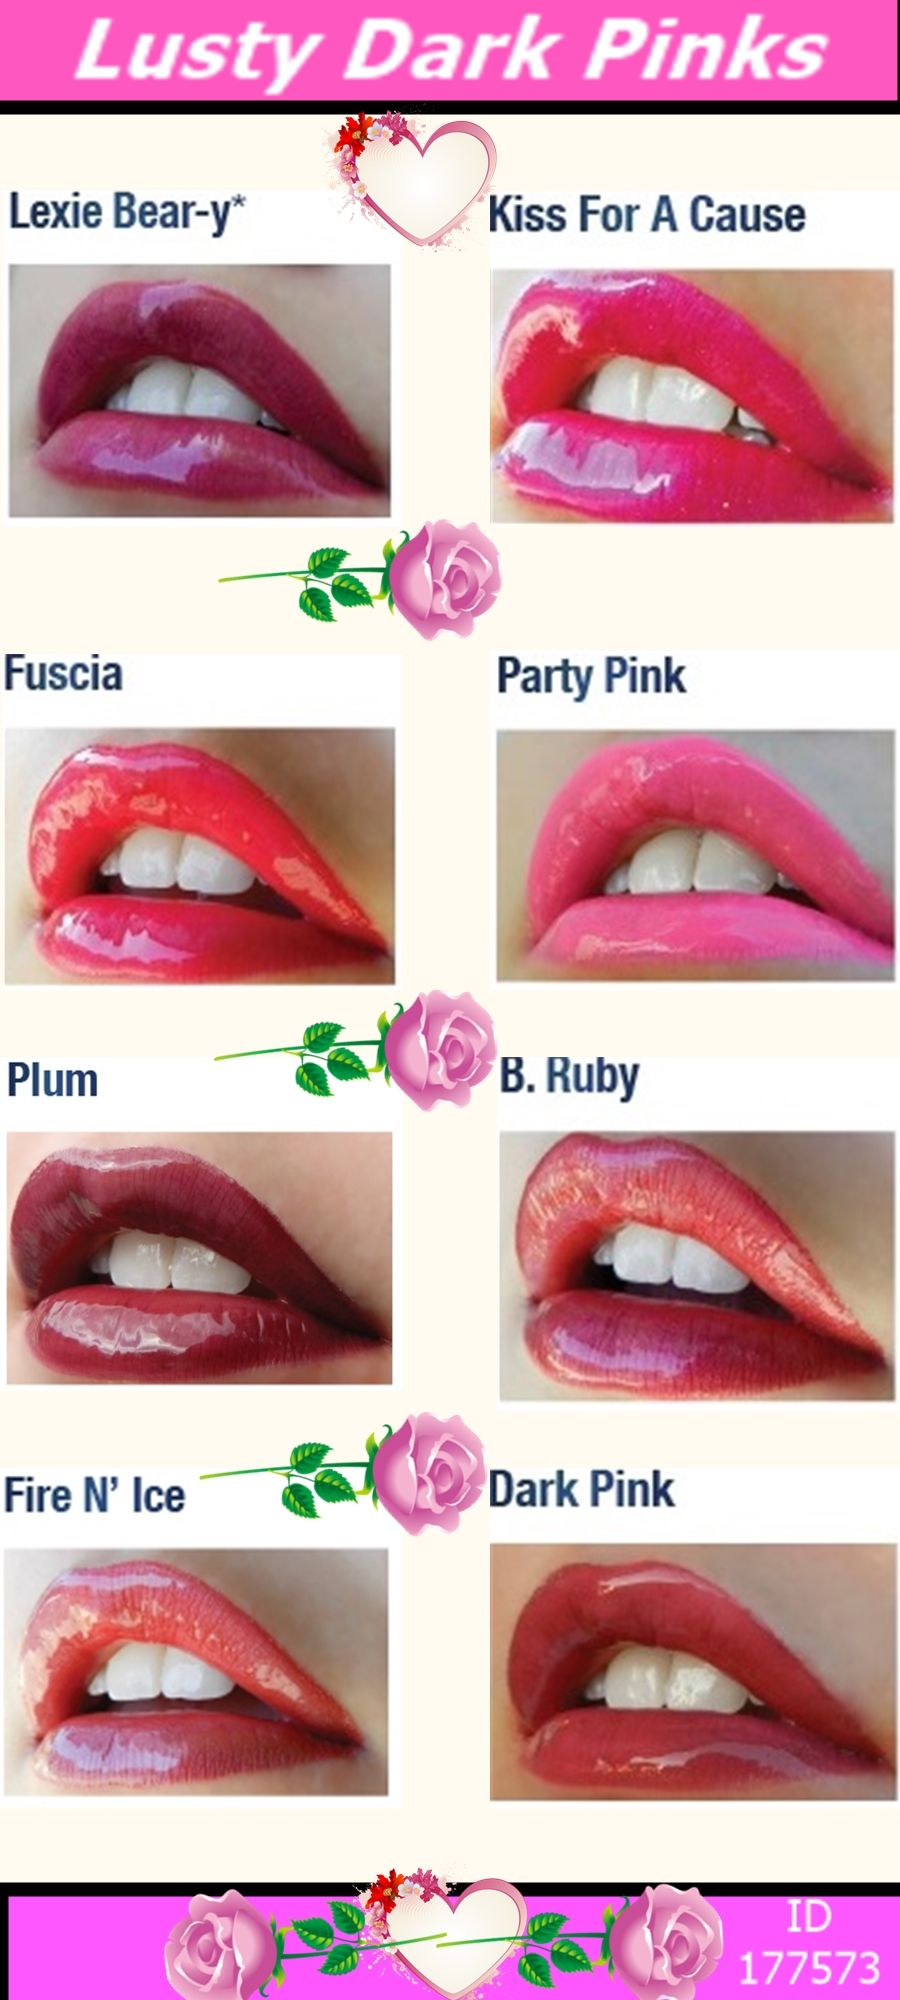 Dark Pink LipSense Lip Colour = Contact us for more info